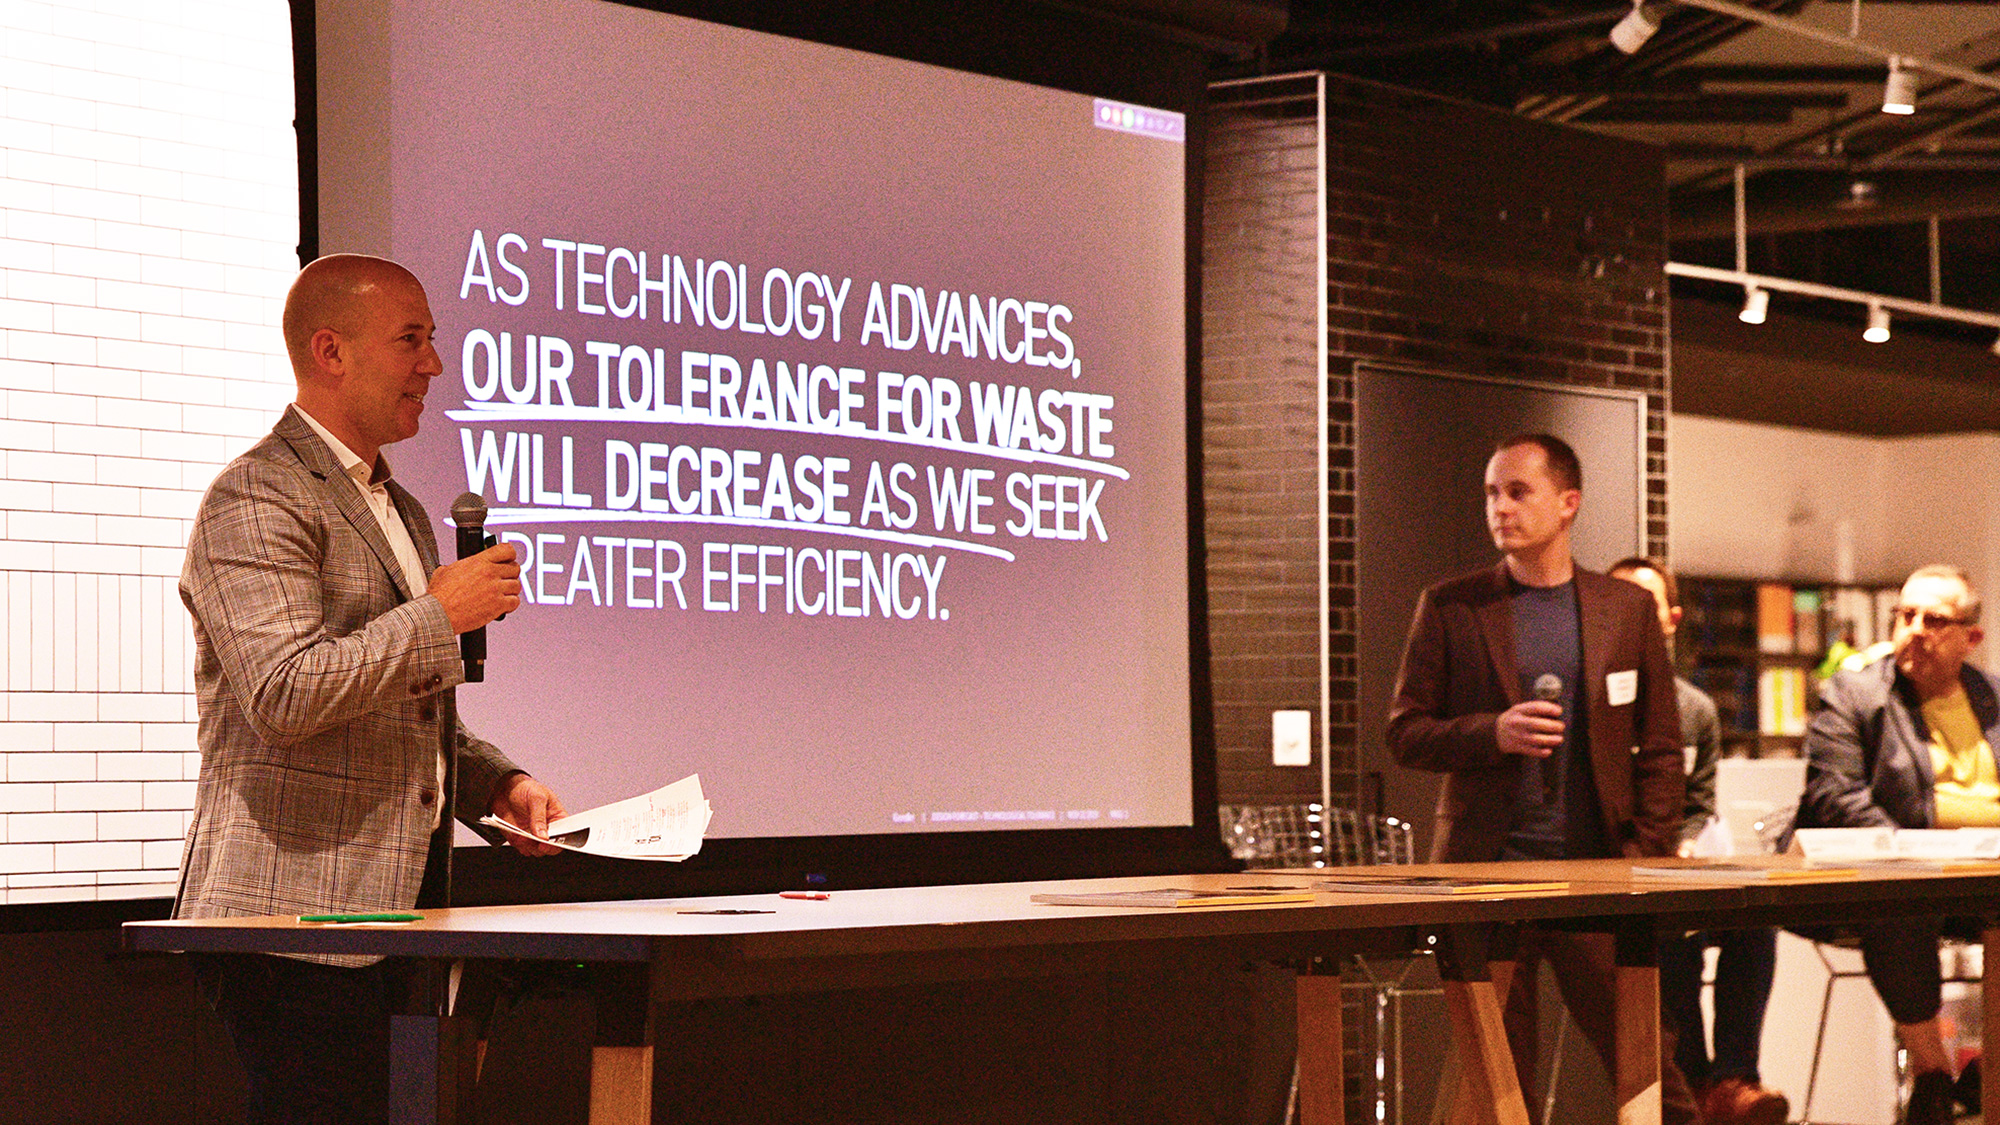 Gensler panelists talk about how technology has decreased our tolerance for waste